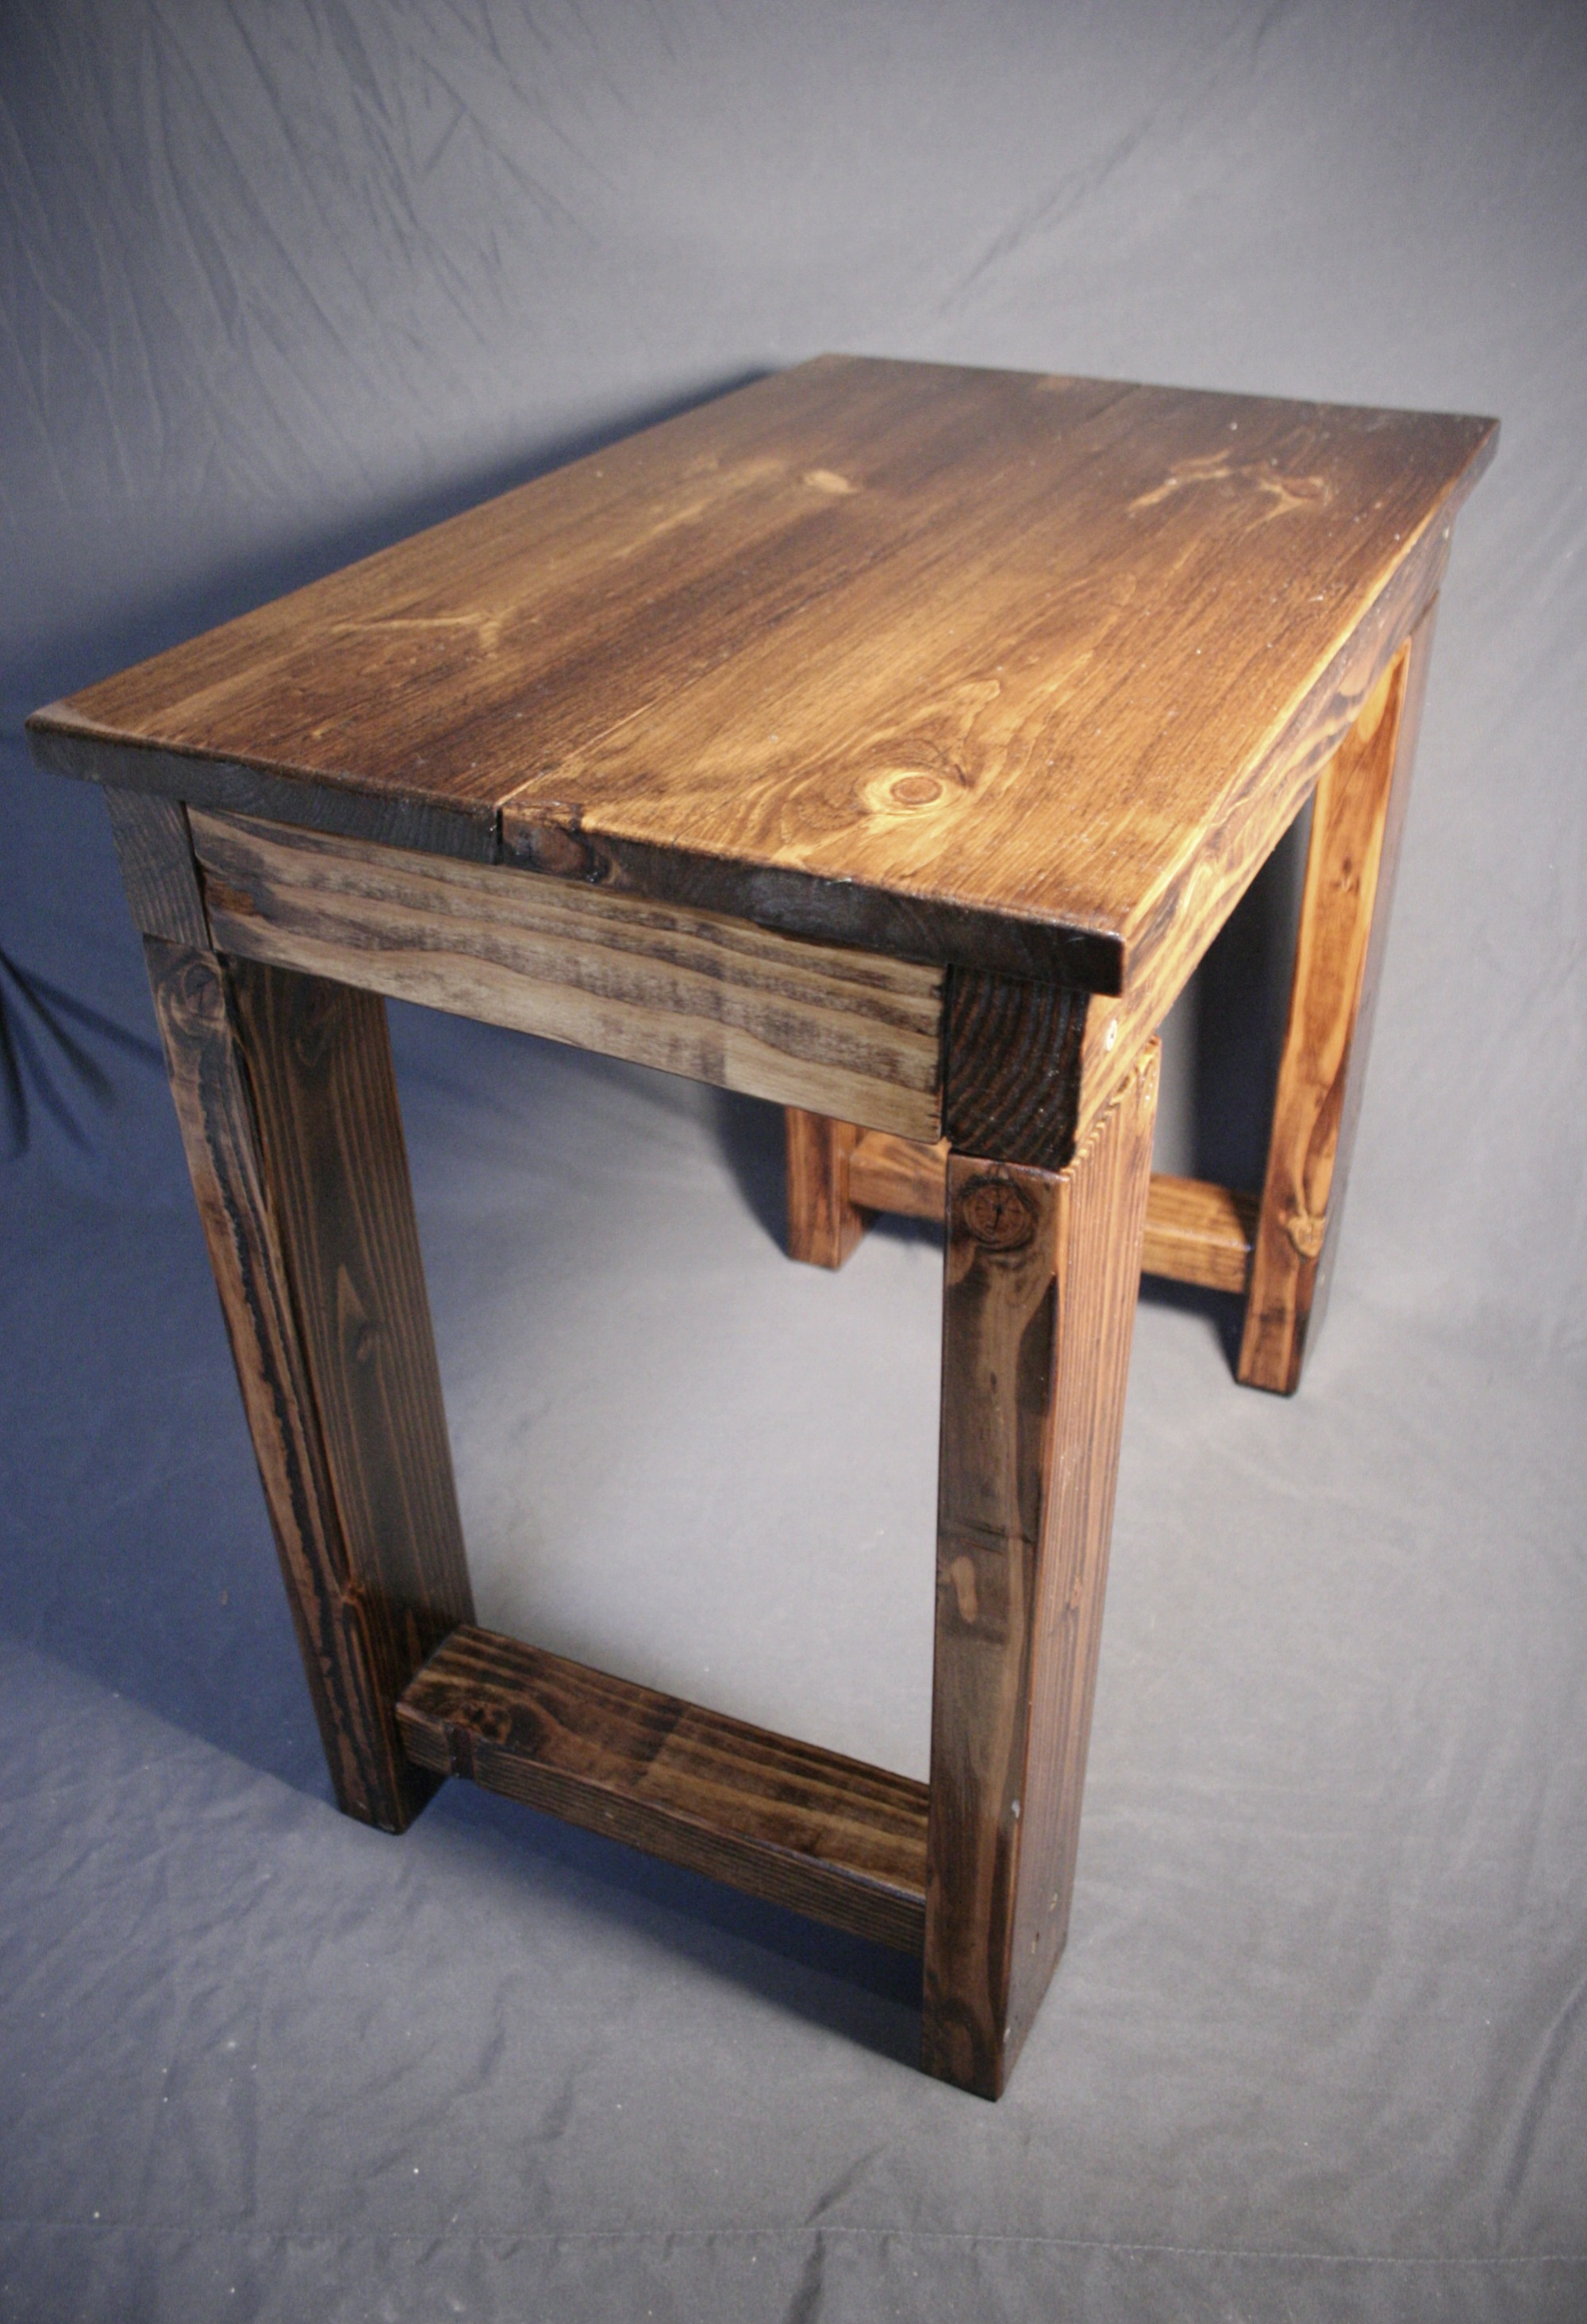 End Table [Follow Link for Video]